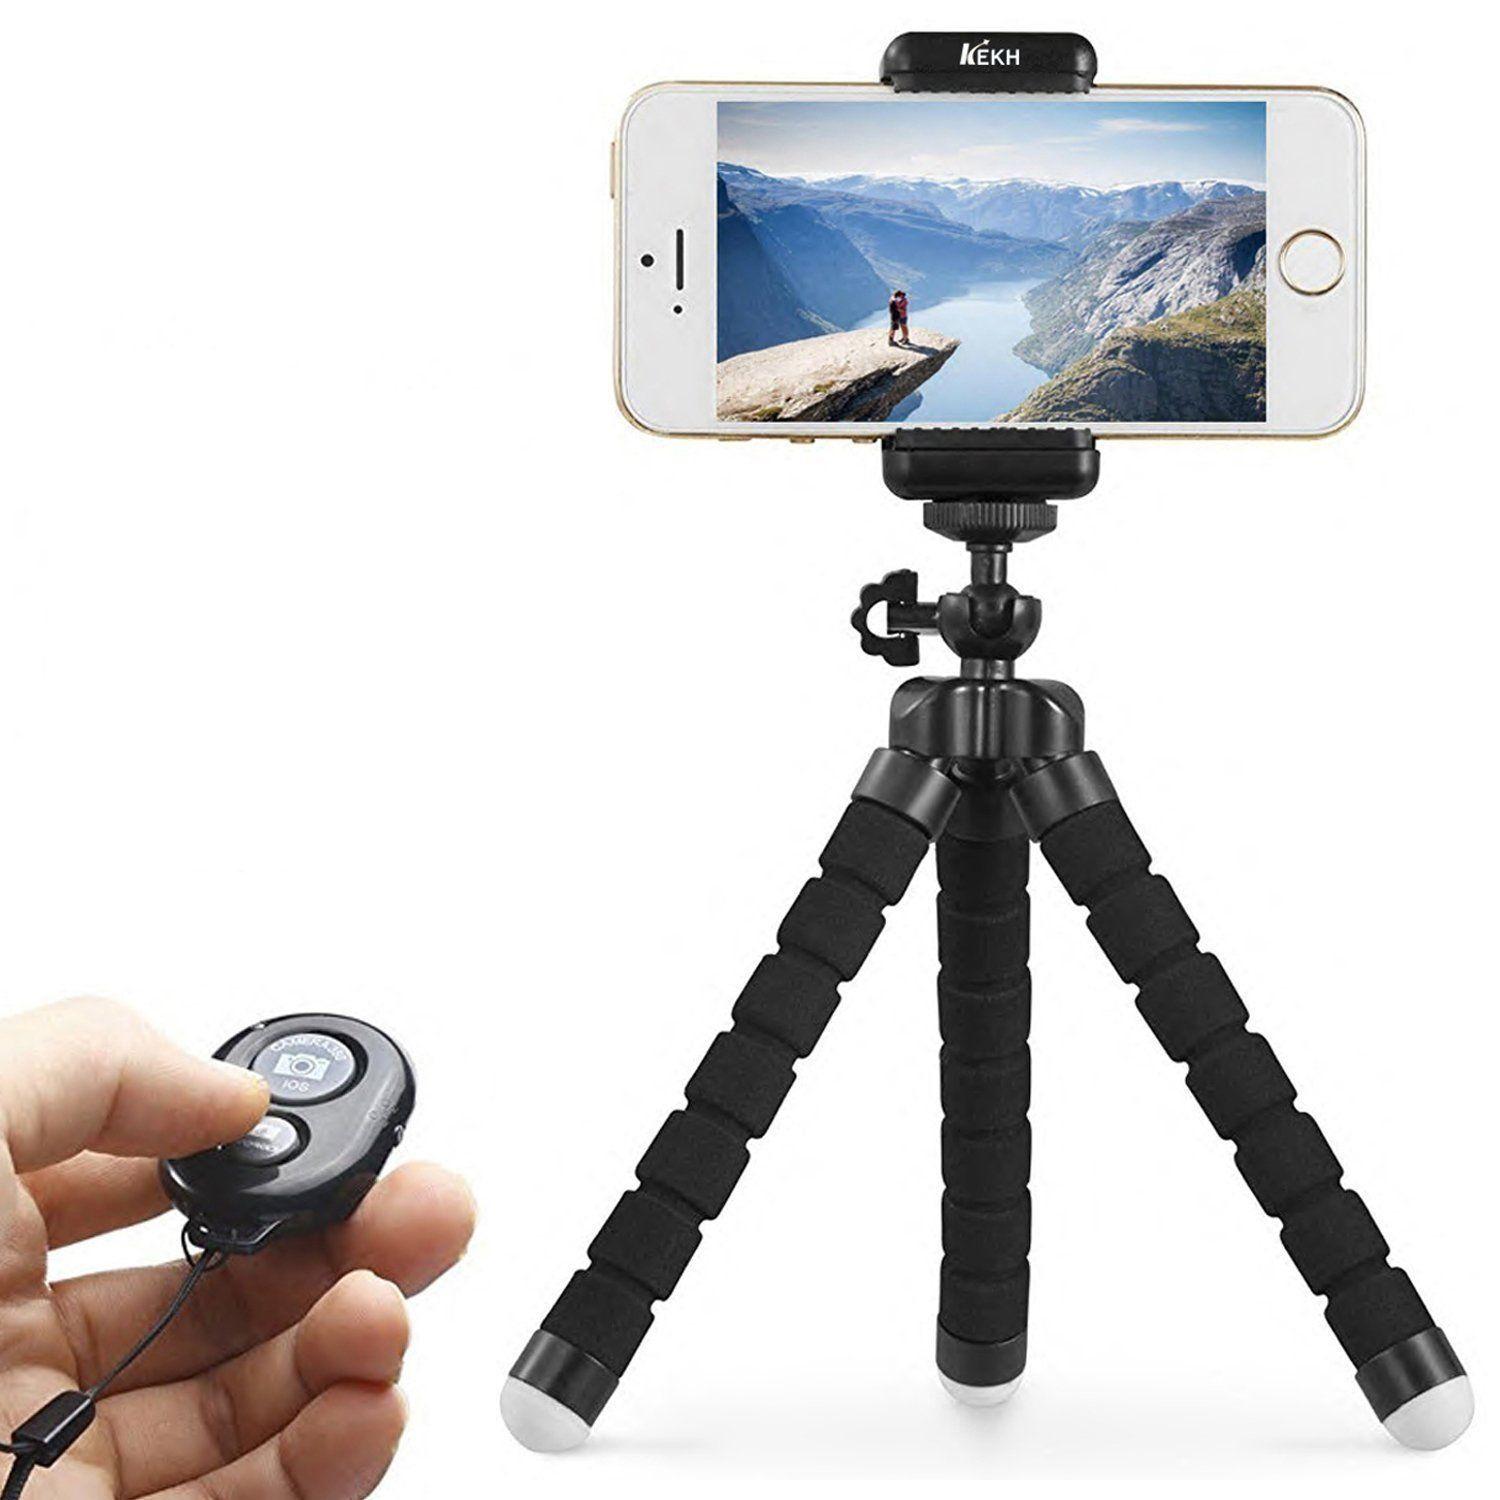 Get KEKH iPhone X Tripod Know more at gad edges iPhoneX Tripods iPhone iOS gad s tech photography videography smartphones Videos